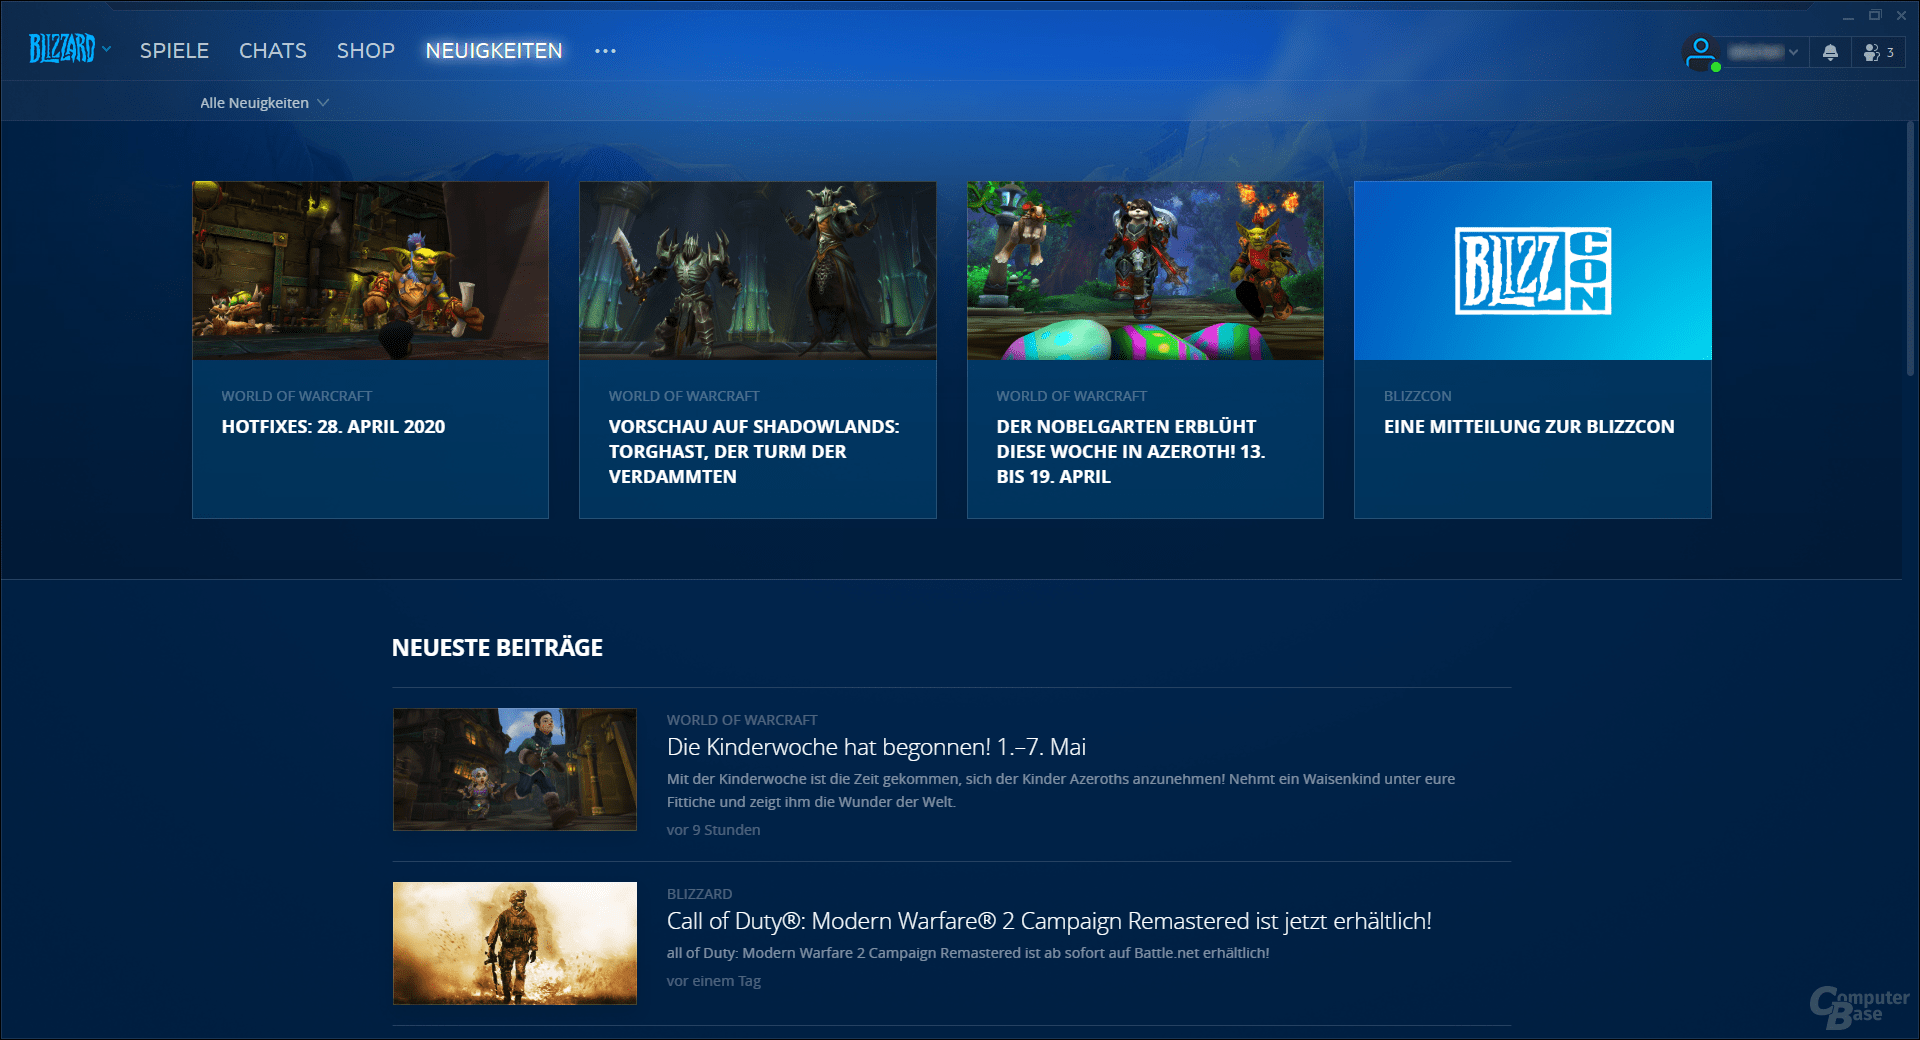 Battle.net – Neuigkeiten